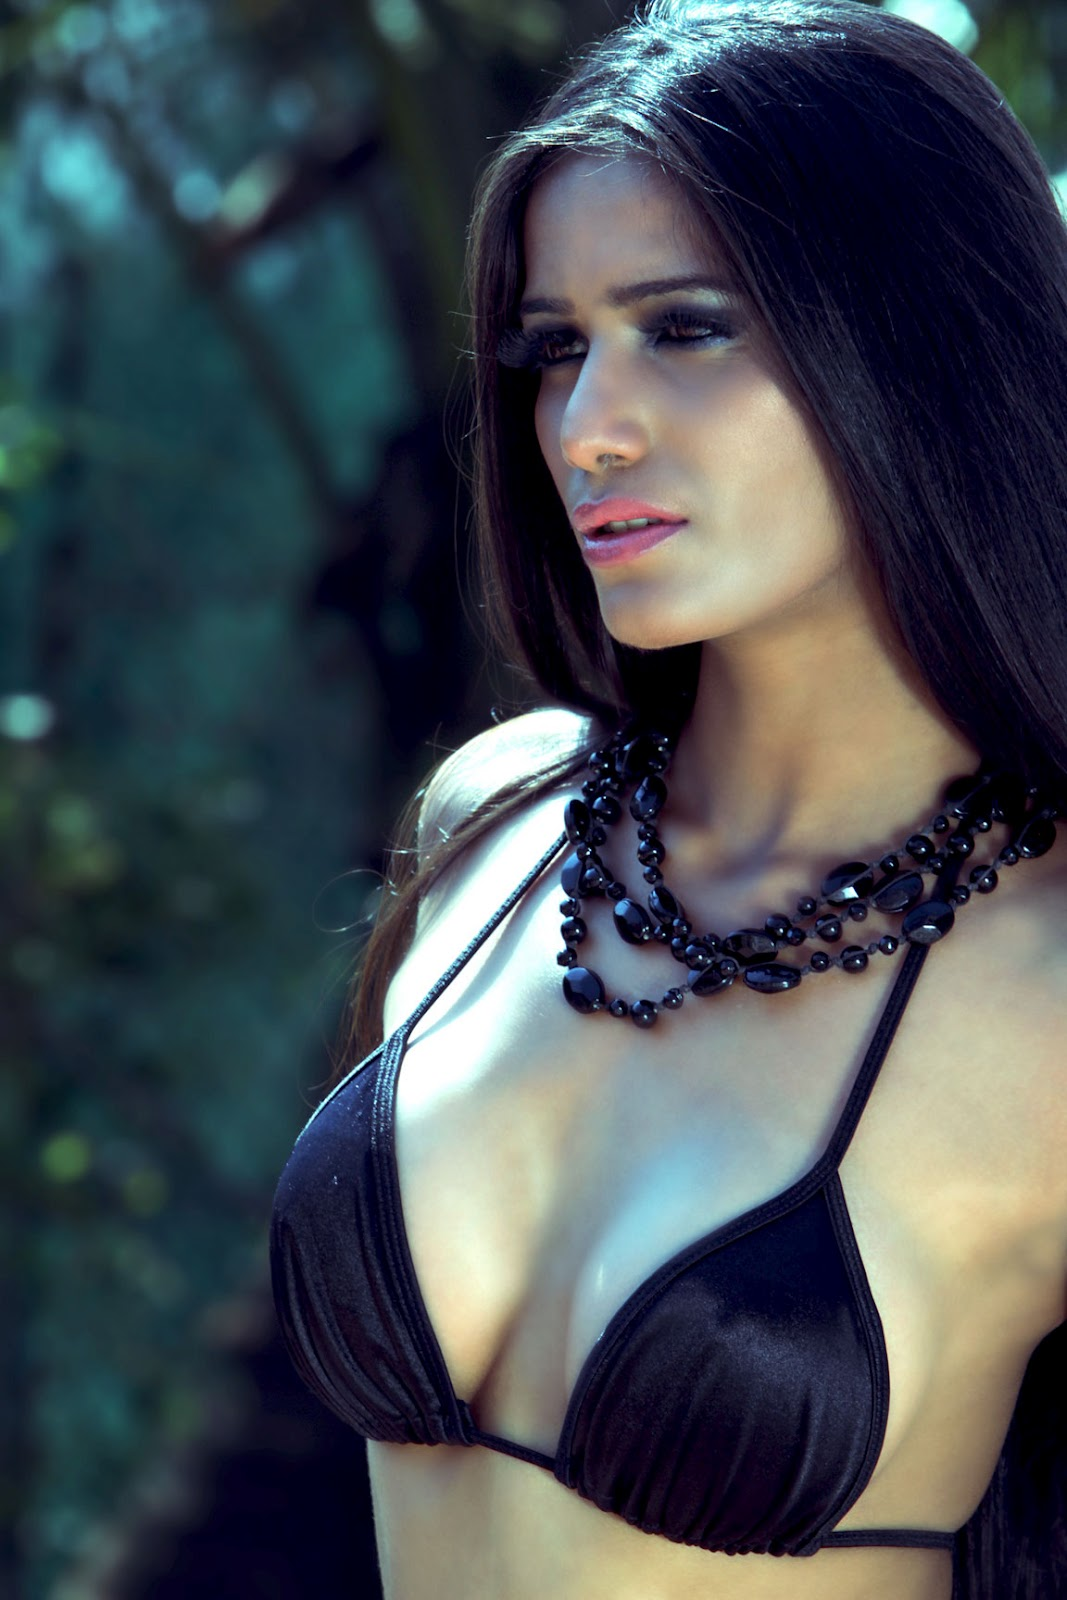 Wallpaper Hd Surfer Girl Hot Indian Models Poonam Pandey Latest Hq Pics Sms In